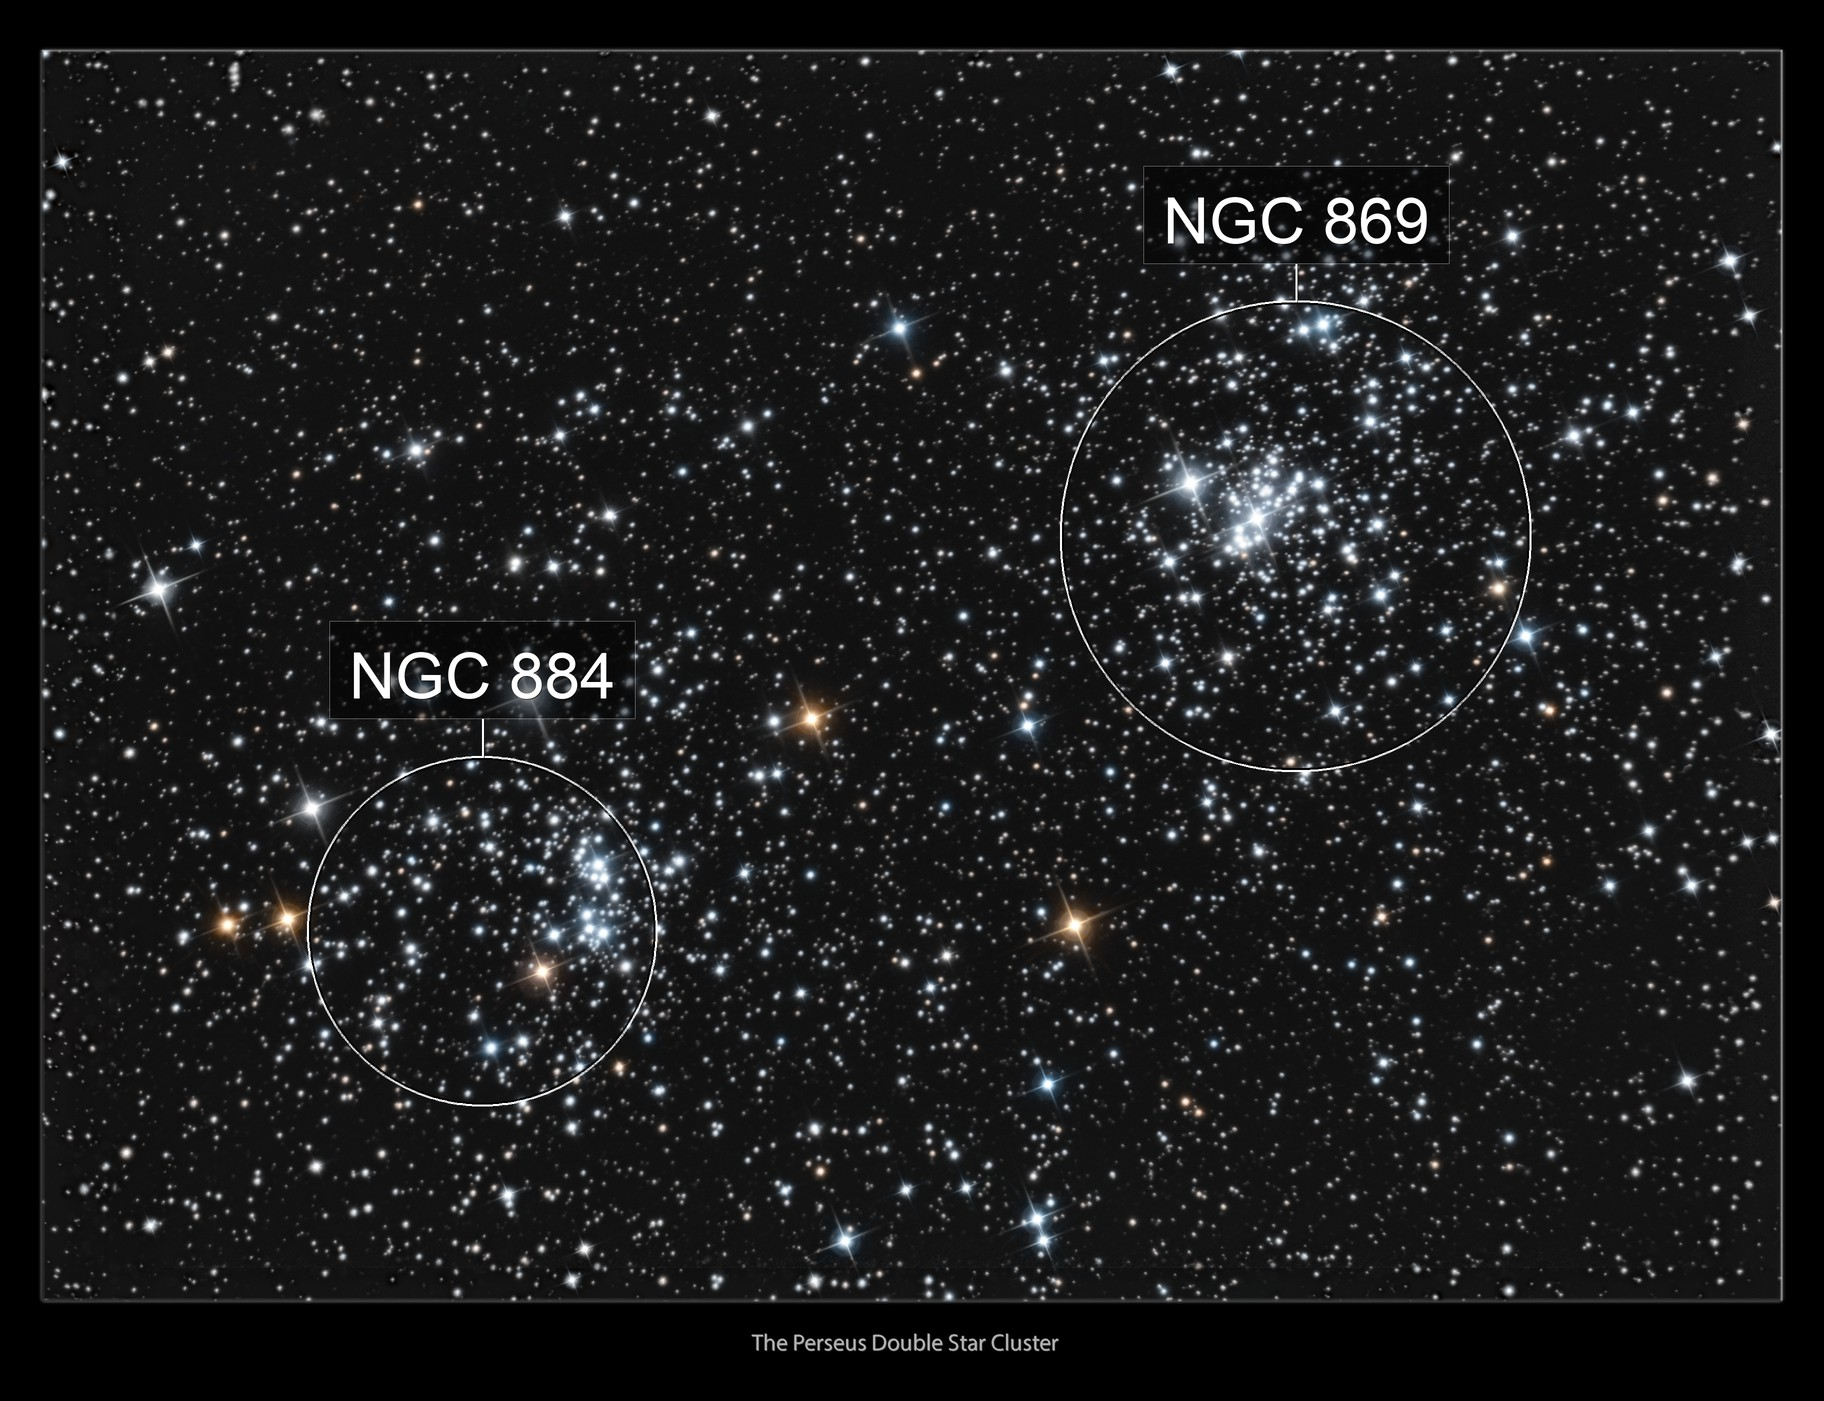 The Perseus Double Star Cluster